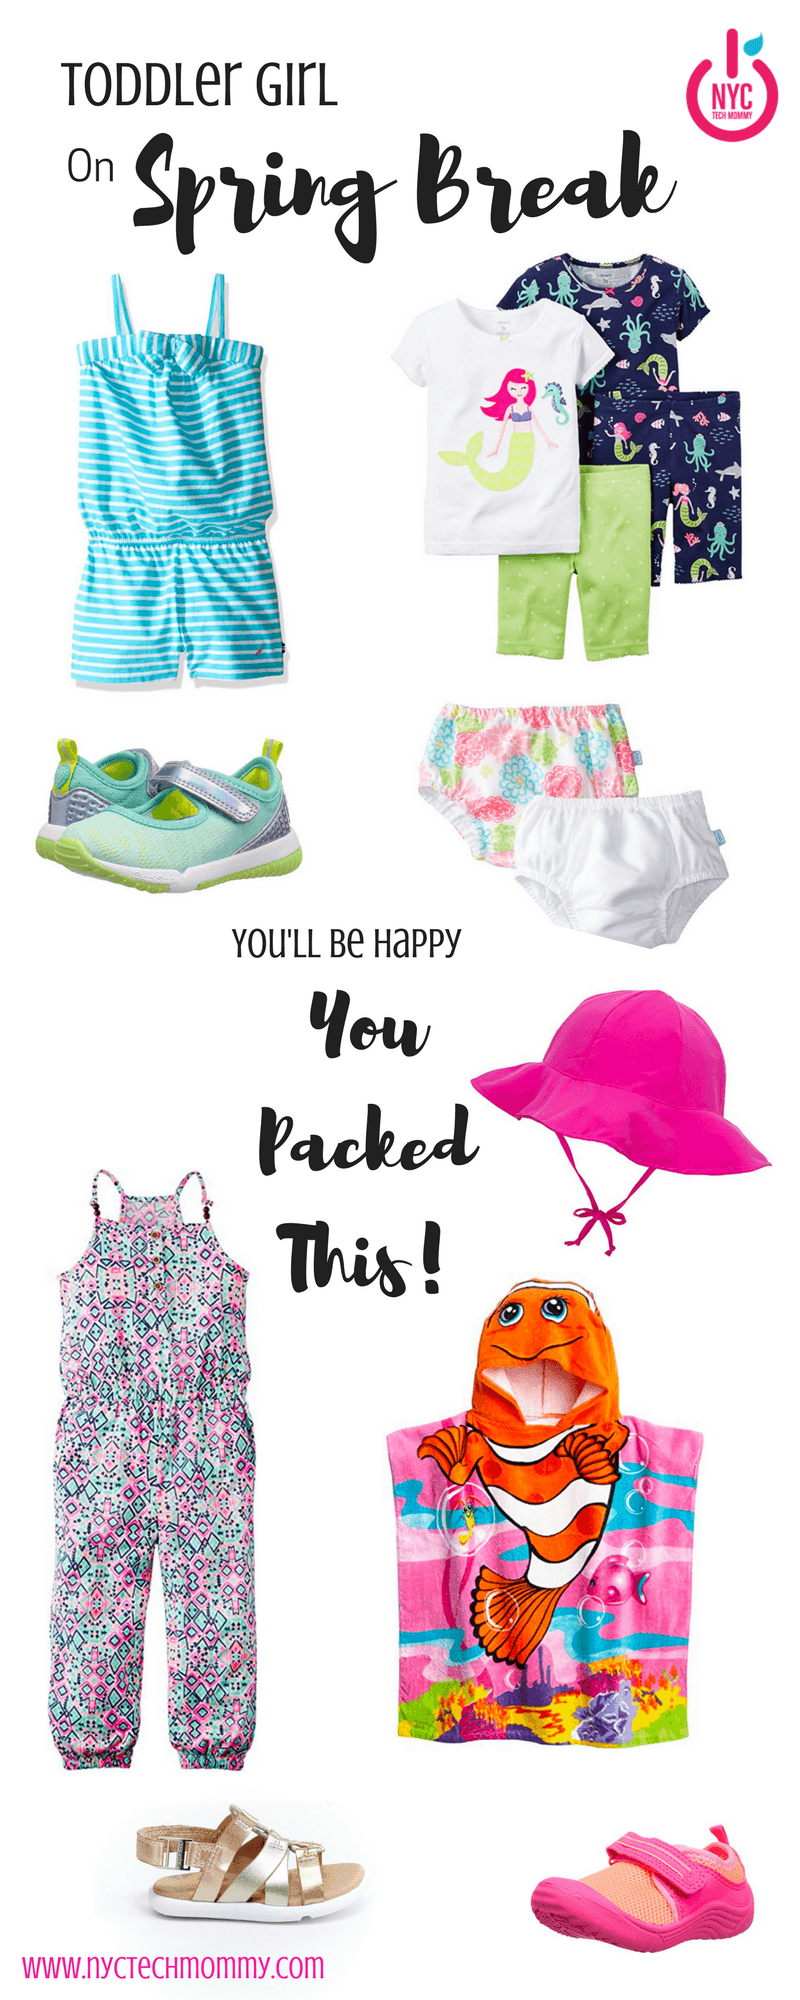 Are you taking baby girl on Spring Break? Here are all the essentials you'll be happy you packed for toddler girl + where to find everything you need!